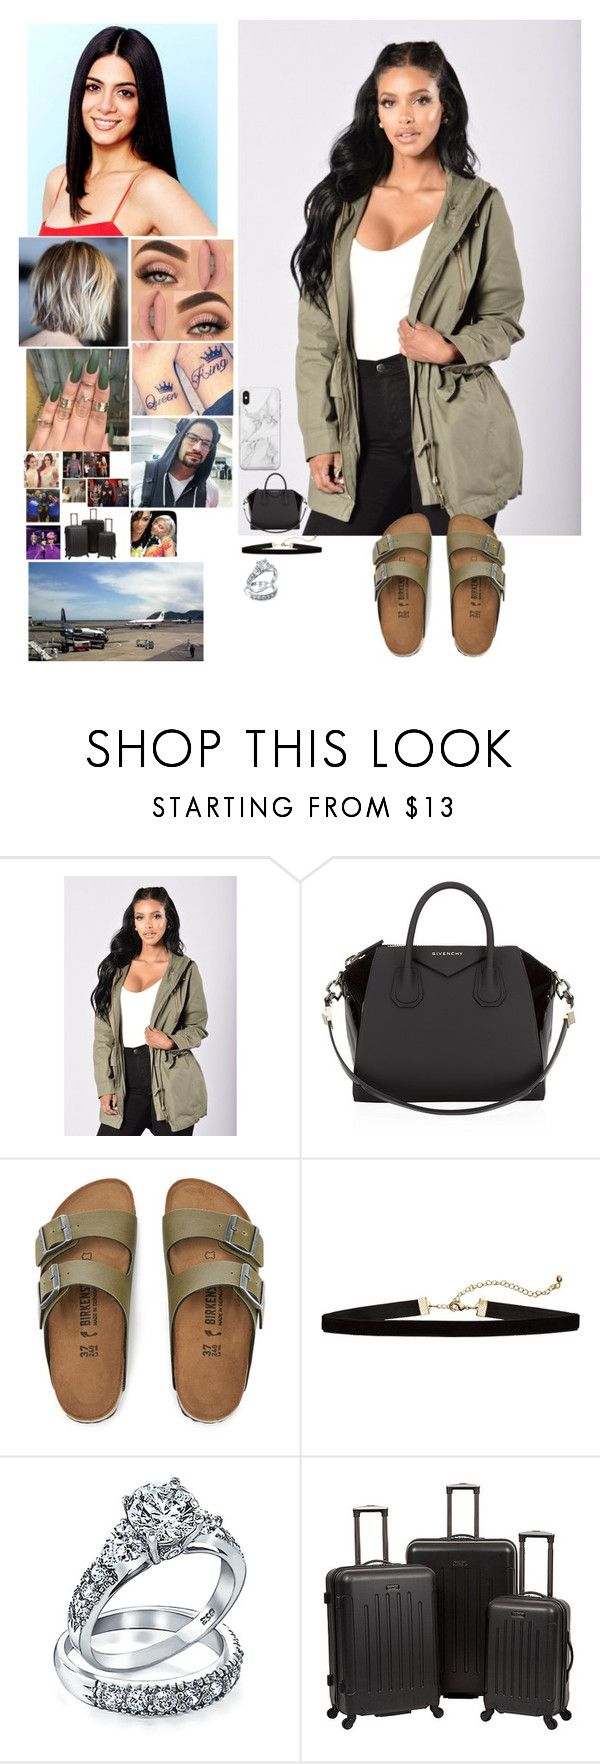 """Dani Bella and Joe flying to The Bahamas for their wedding with their very good friends"" by safia4life ❤ liked on Polyvore featuring Givenchy, Birkenstock, Bling Jewelry, CENA, WWE and Recover"